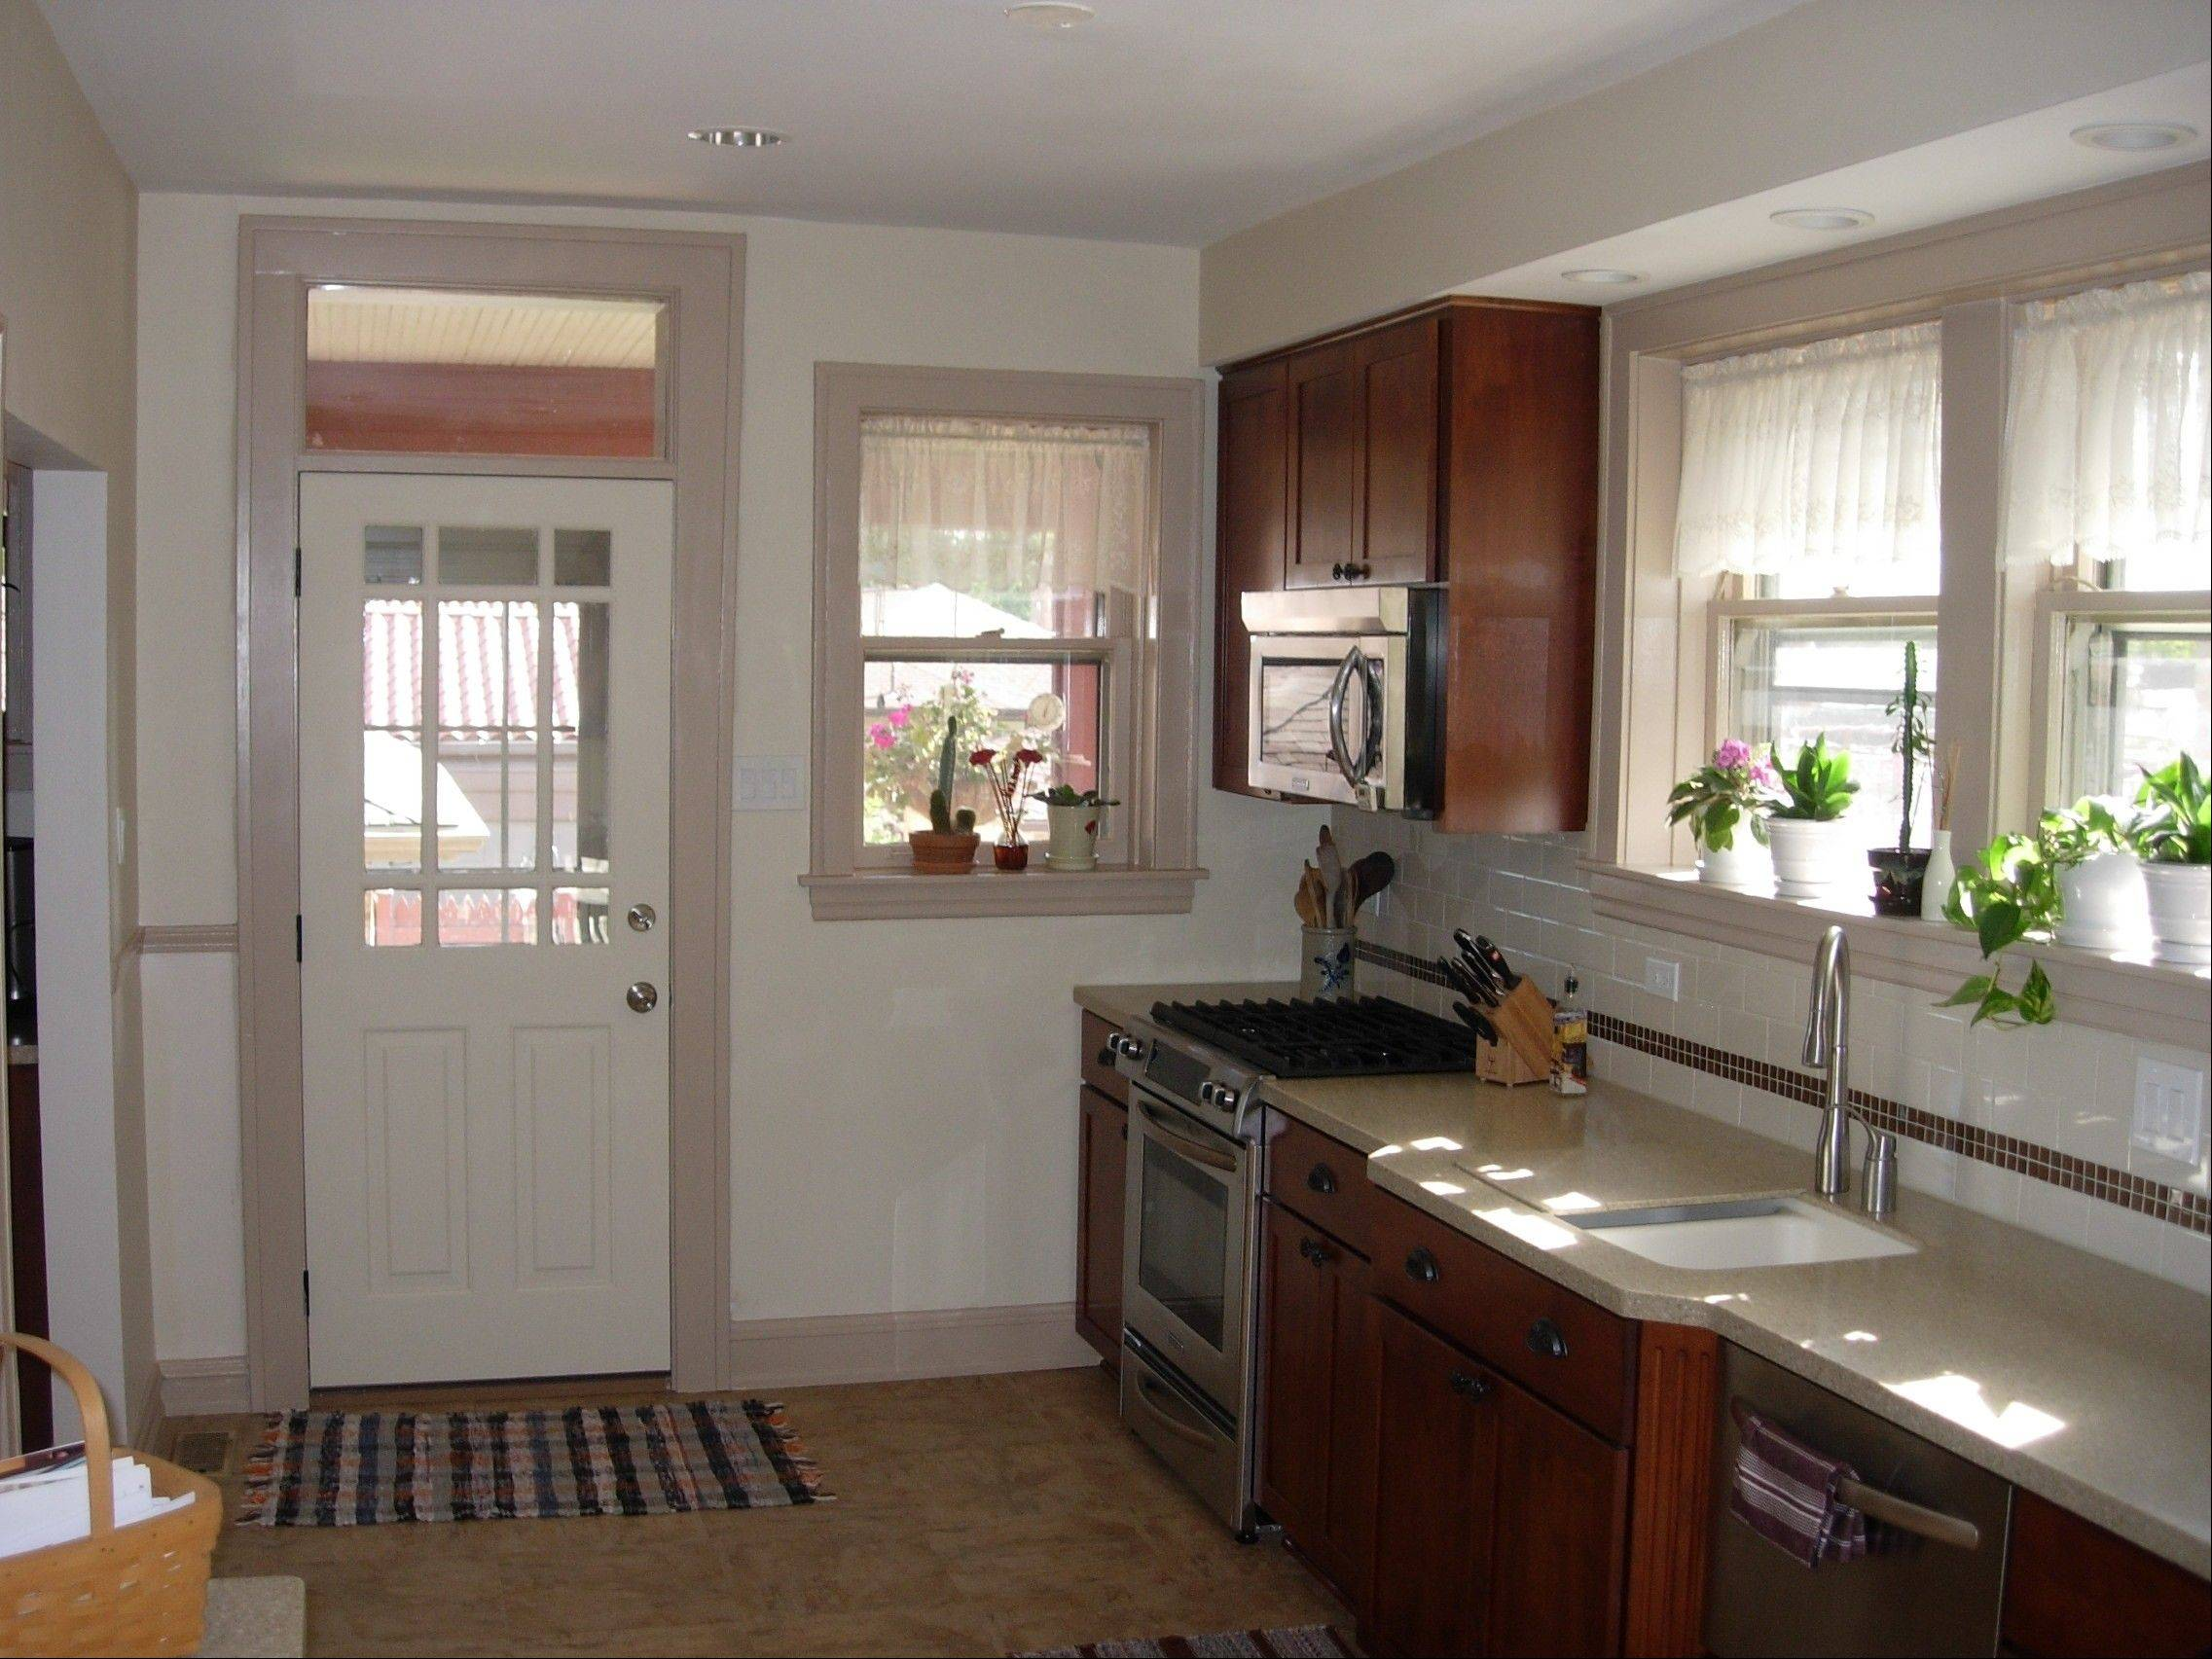 Remodelers embracing homes' bygone eras